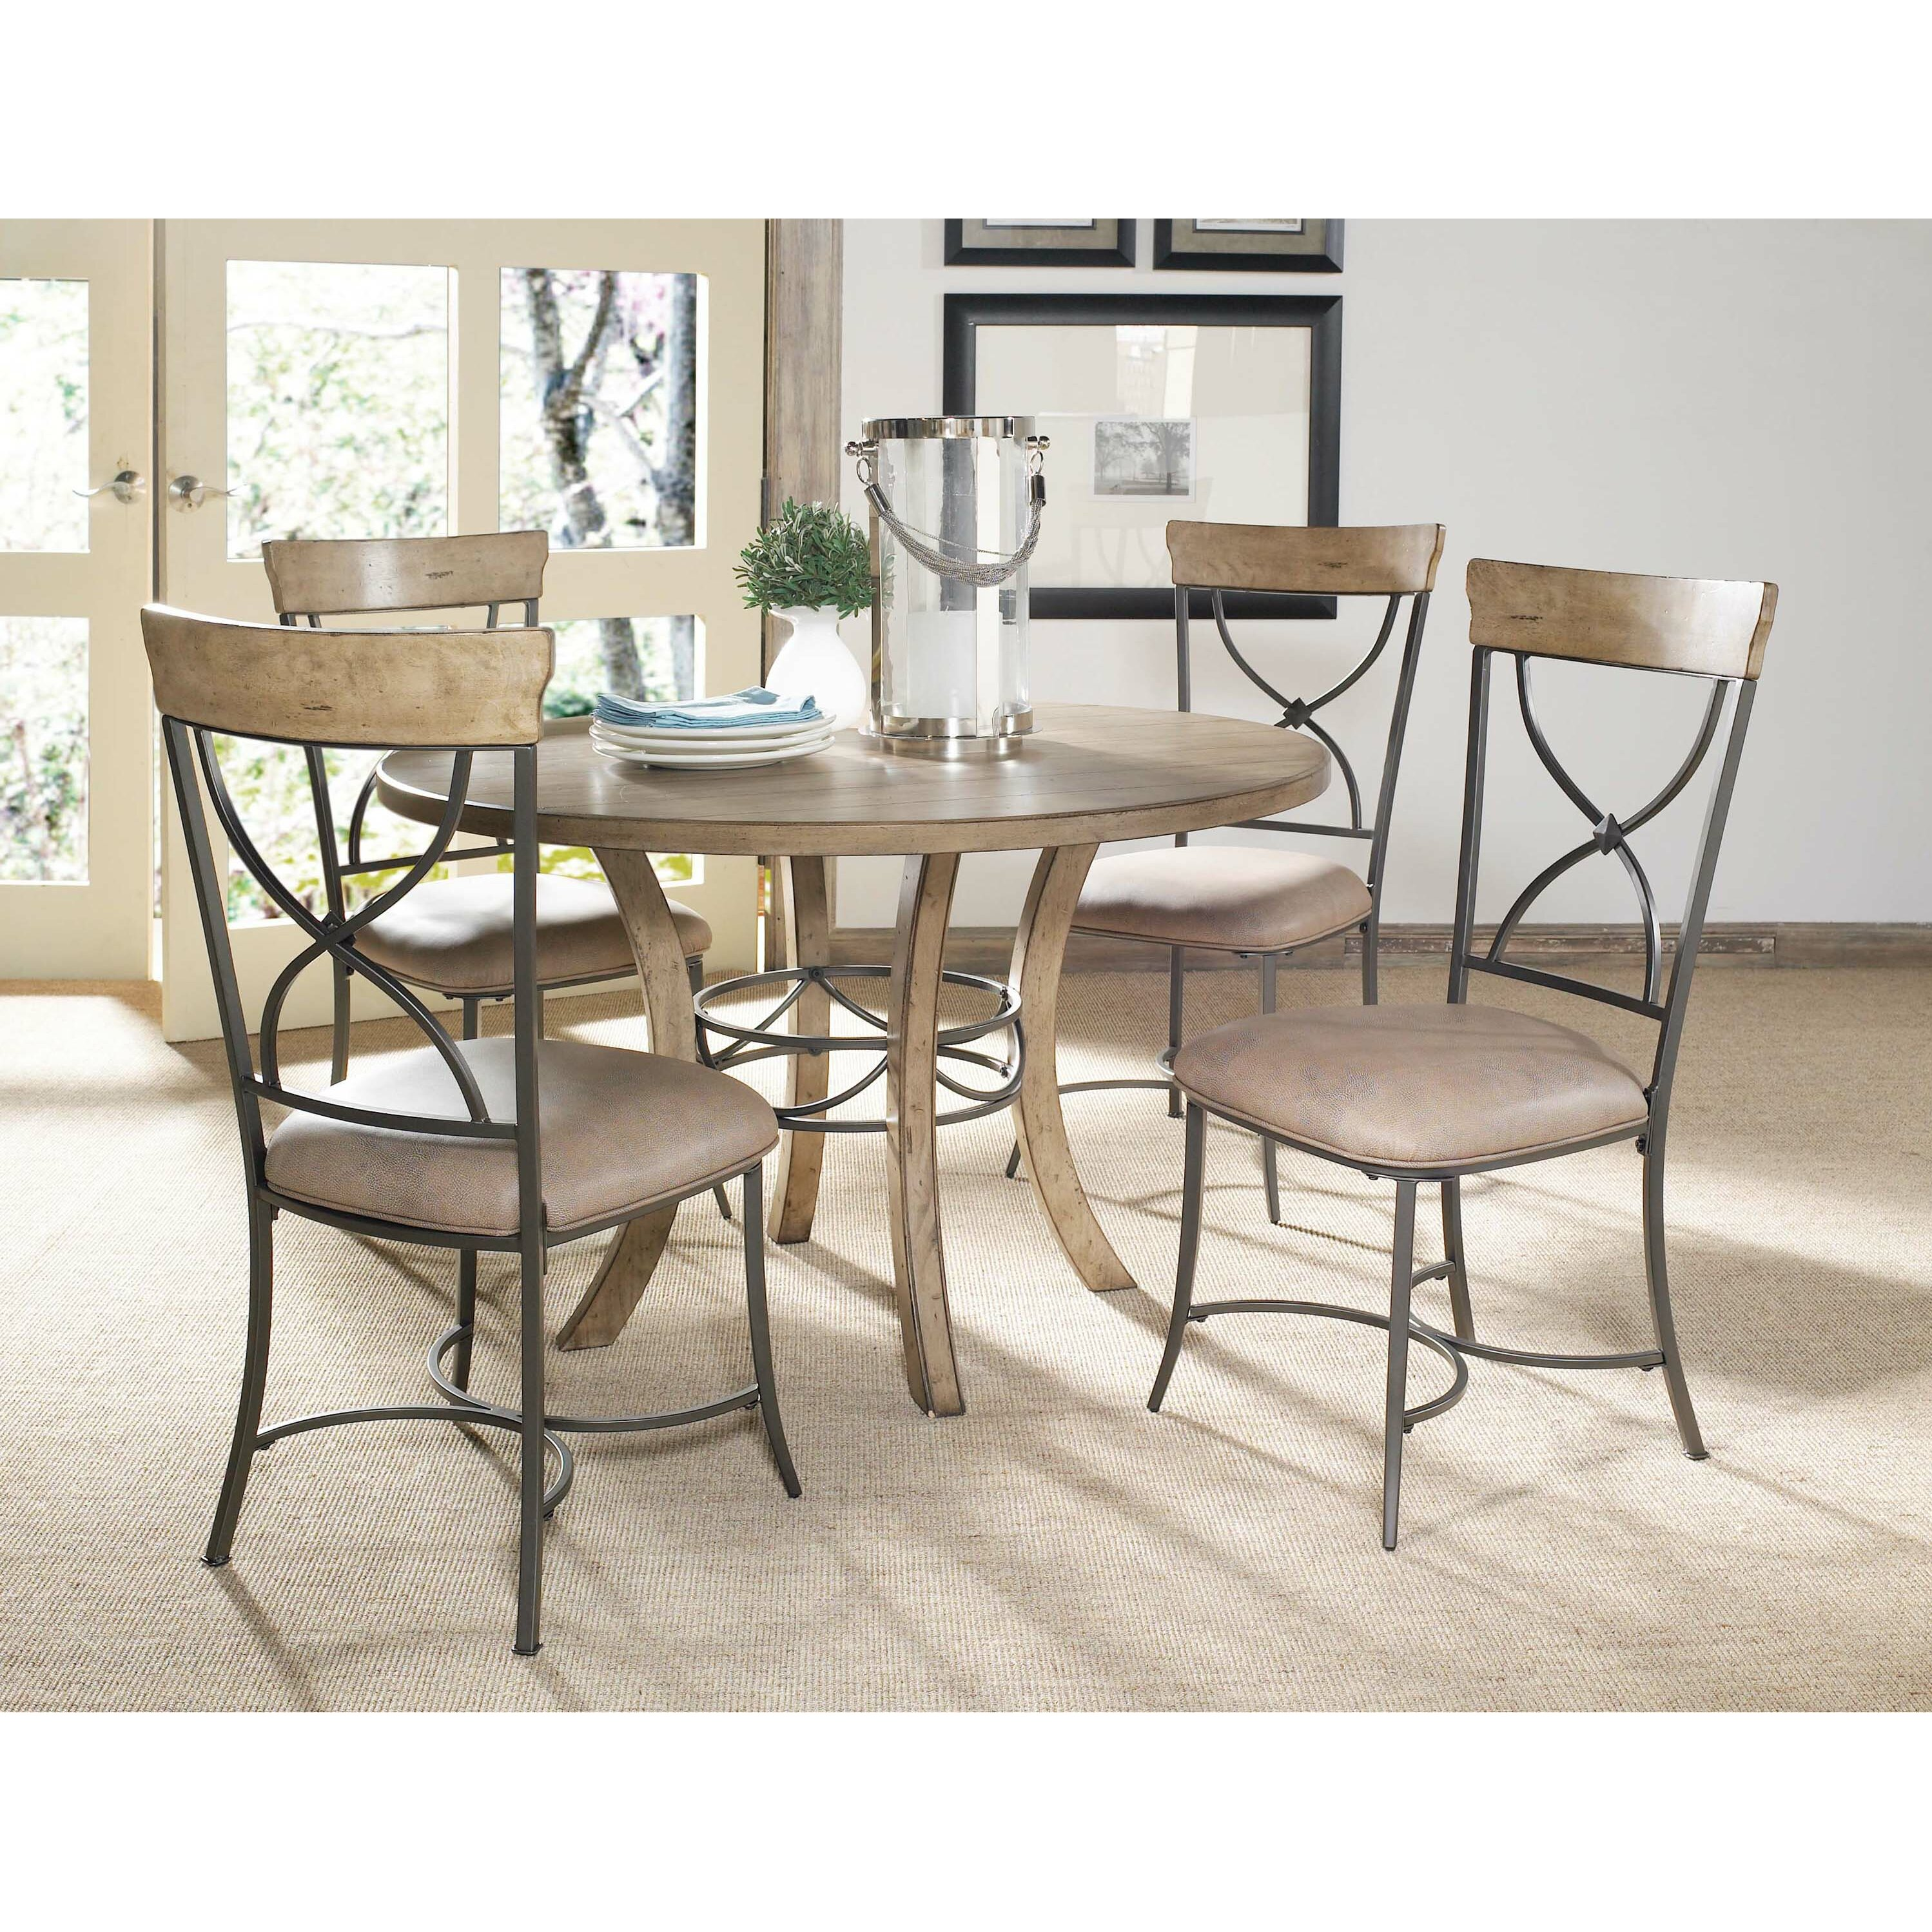 Hillsdale Charleston 5 Piece Dining Set Reviews – Hillsdale Dining Chairs